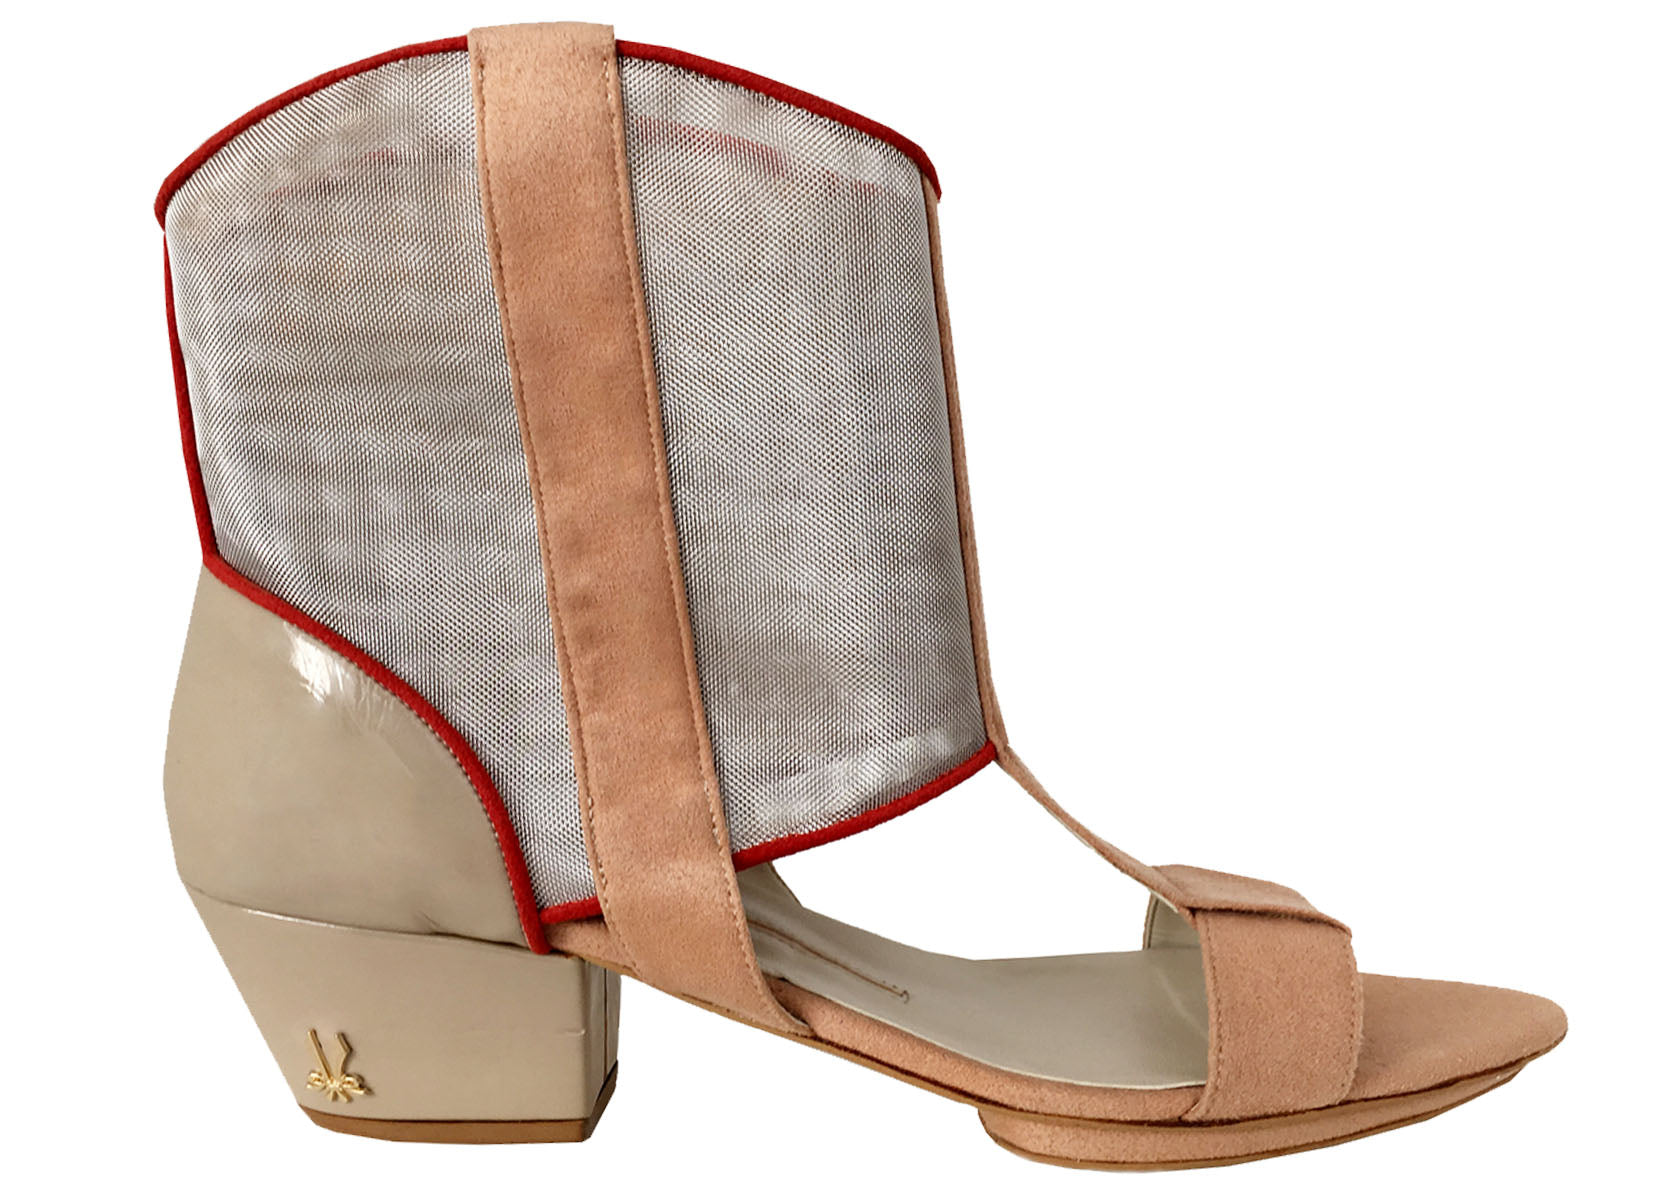 C-Boy sand vegan ankle sandals booty